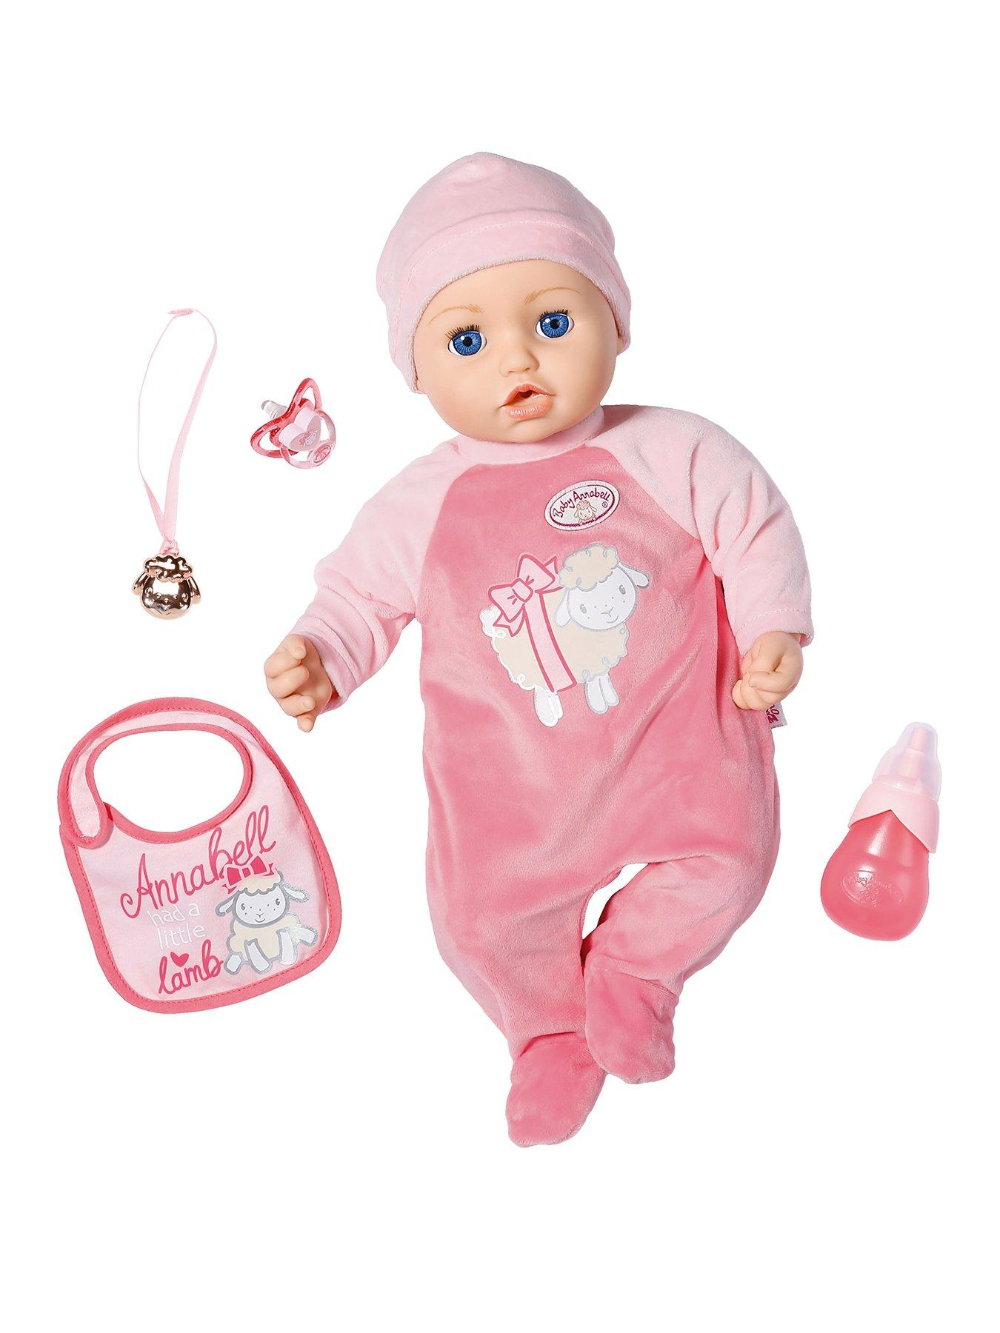 Baby Annabell 43cm (With images) Baby doll toys, Baby, Dolls